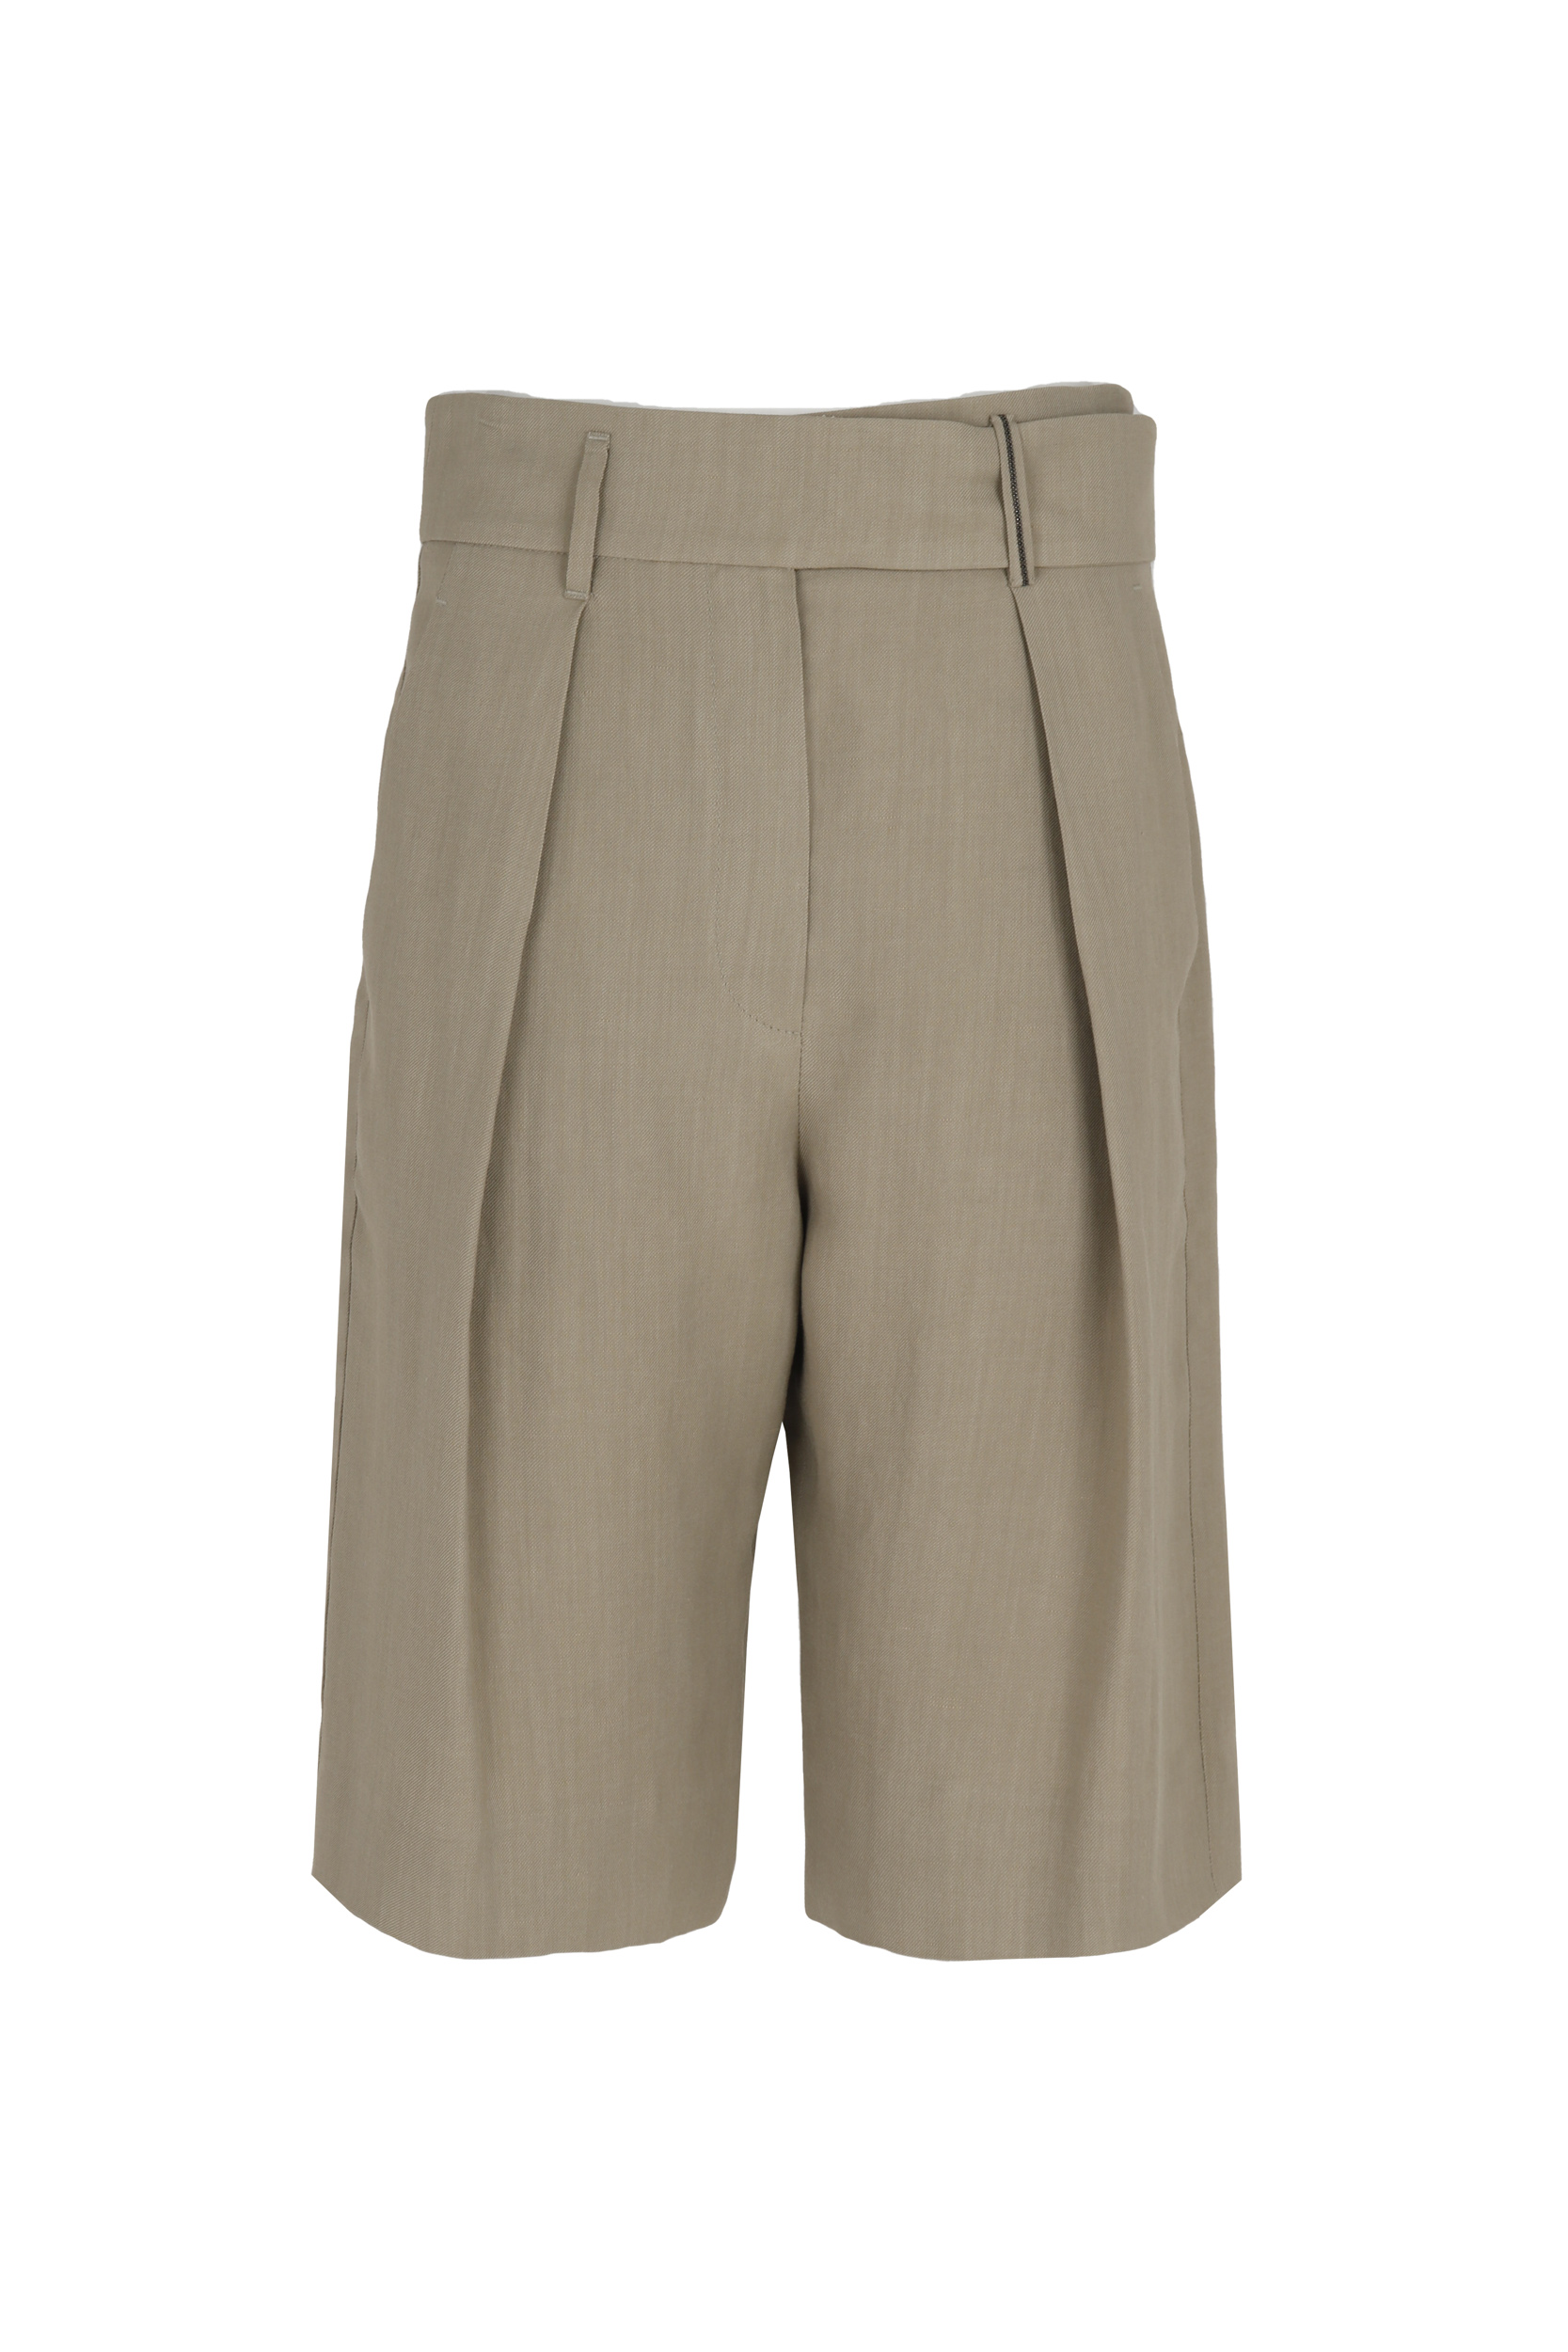 Brunello Cucinelli Linings SHORTS